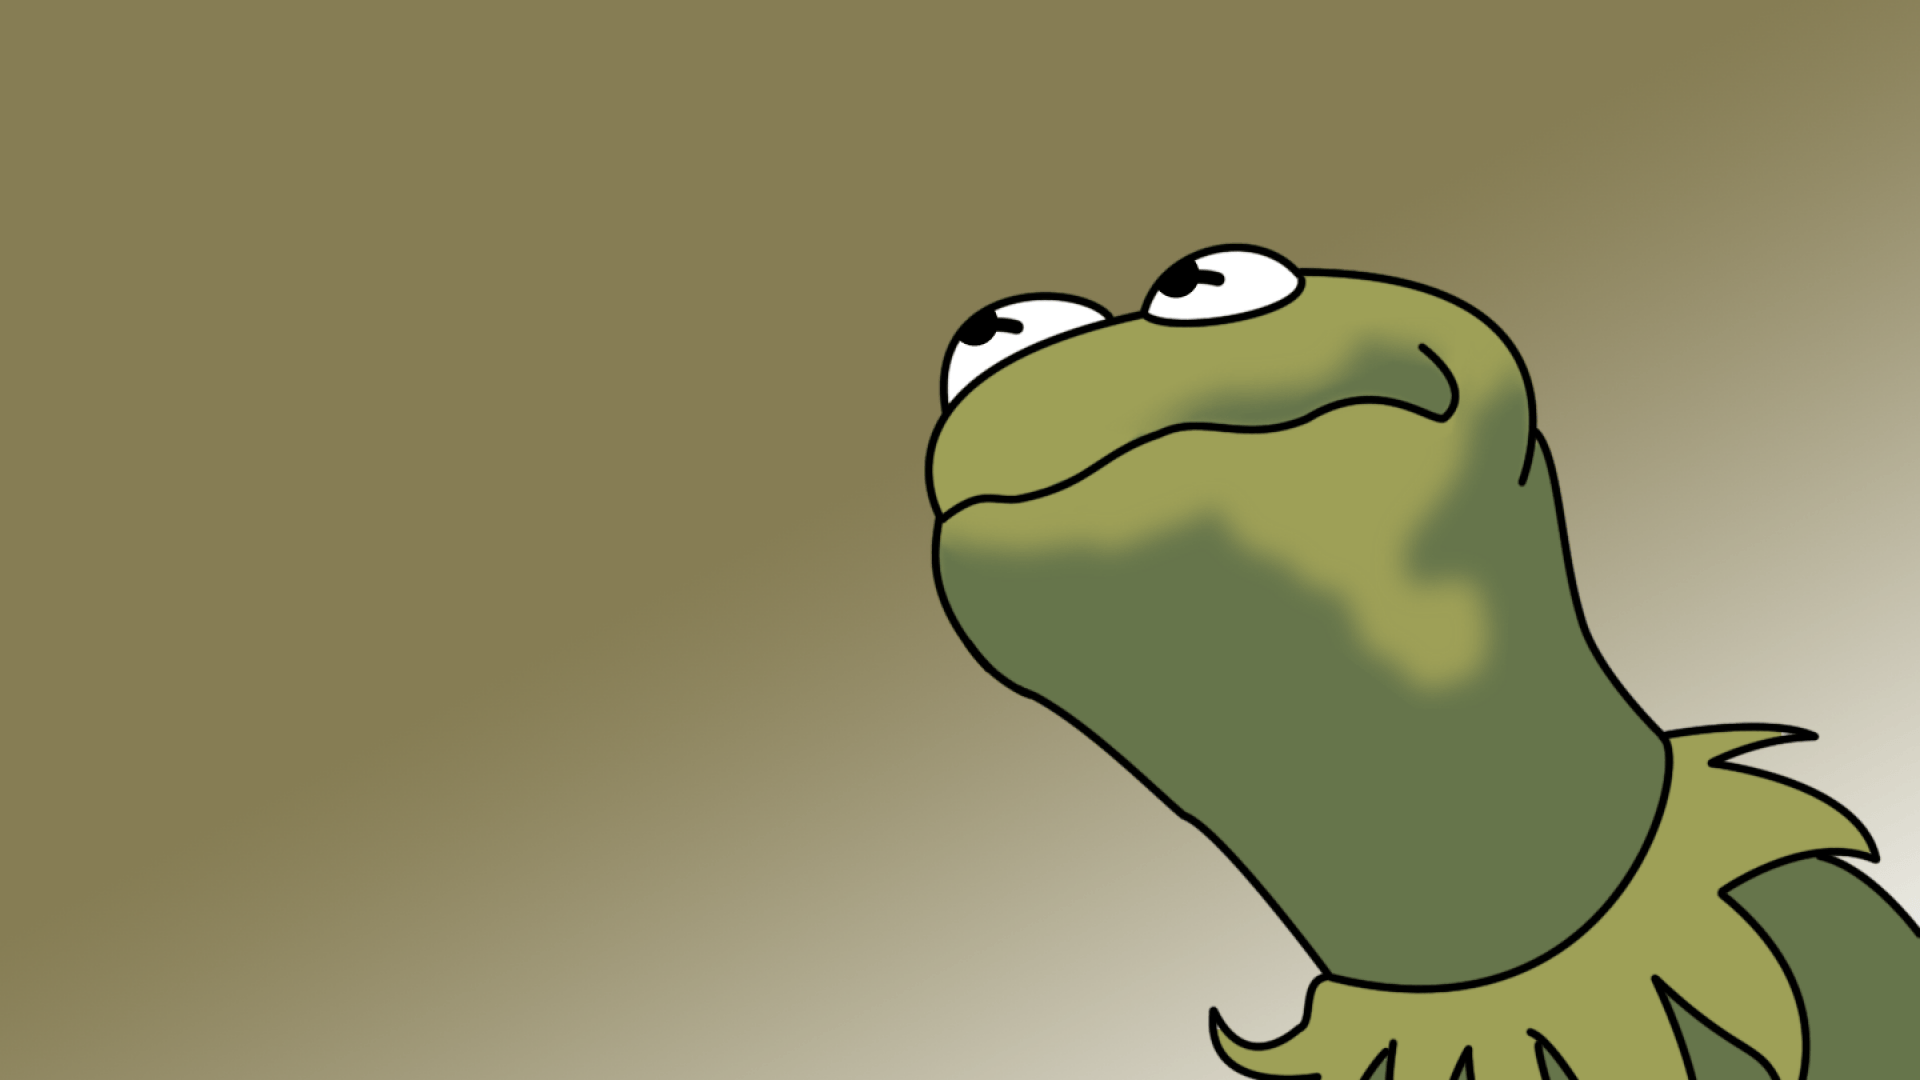 1920x1080 Kermit The Frog Wallpaper Supreme ✓ Kamos HD Wallpaper